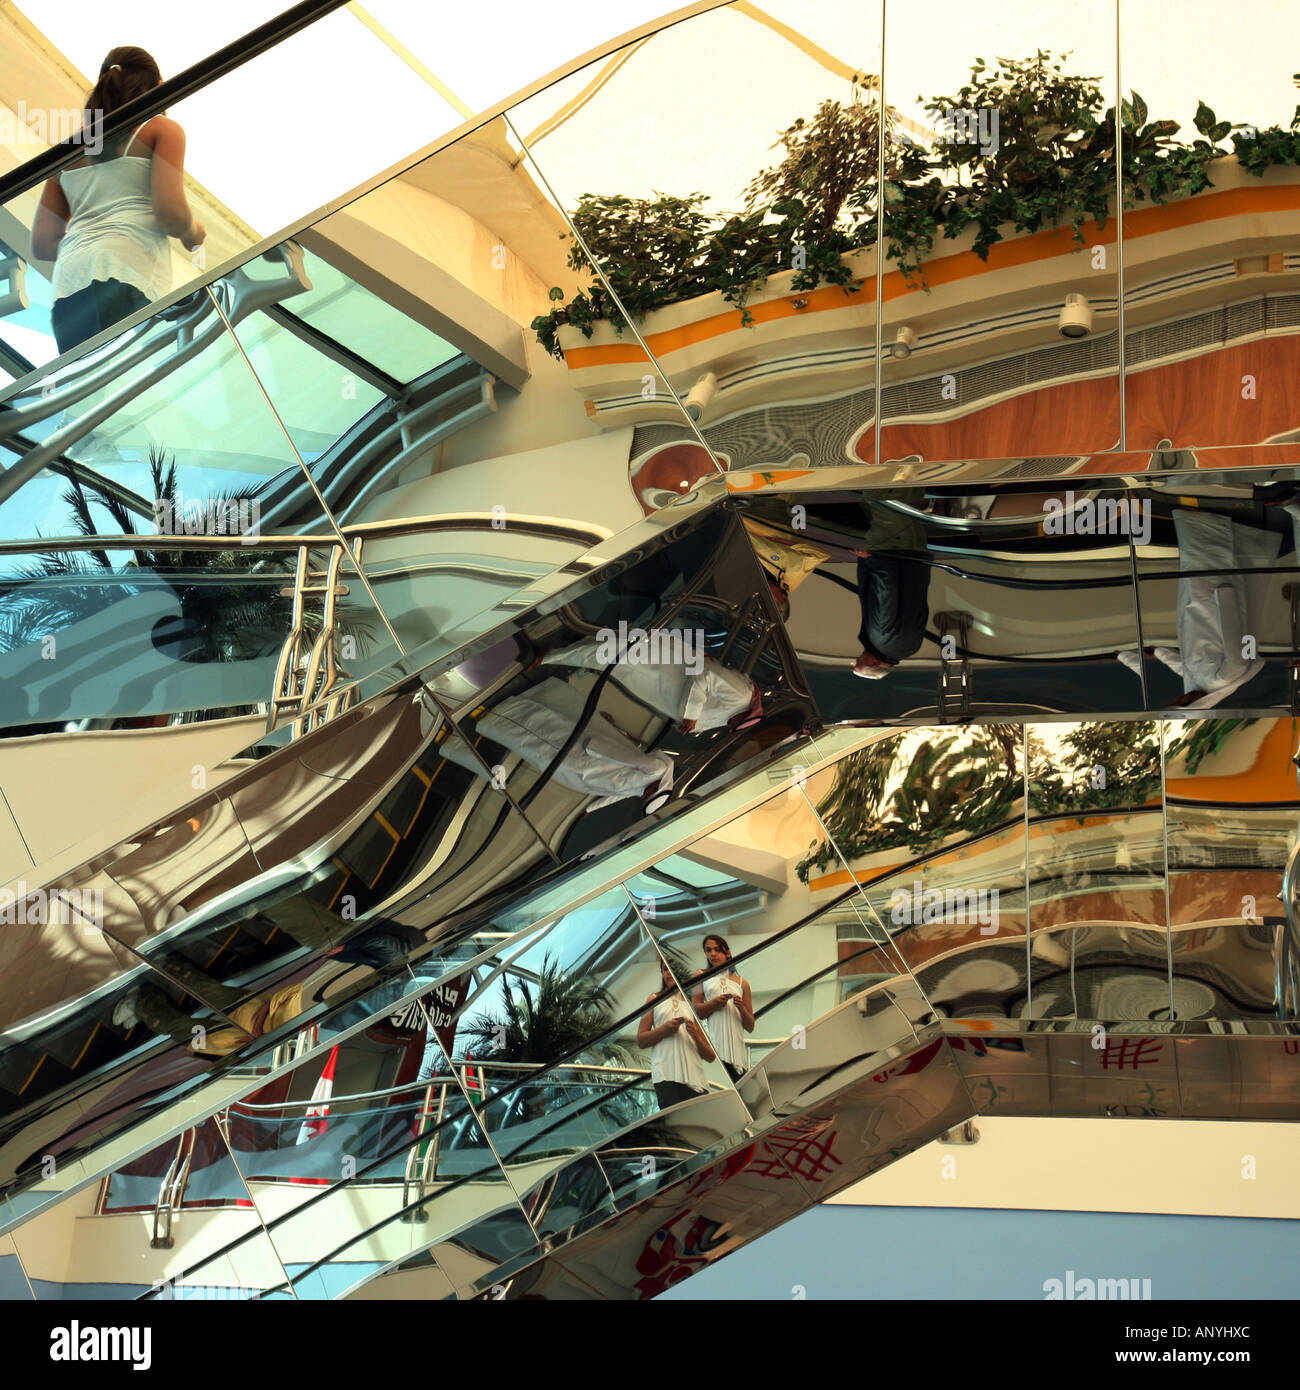 a-young-girl-travels-on-an-escalator-reflected-in-the-stainless-steel-ANYHXC.jpg